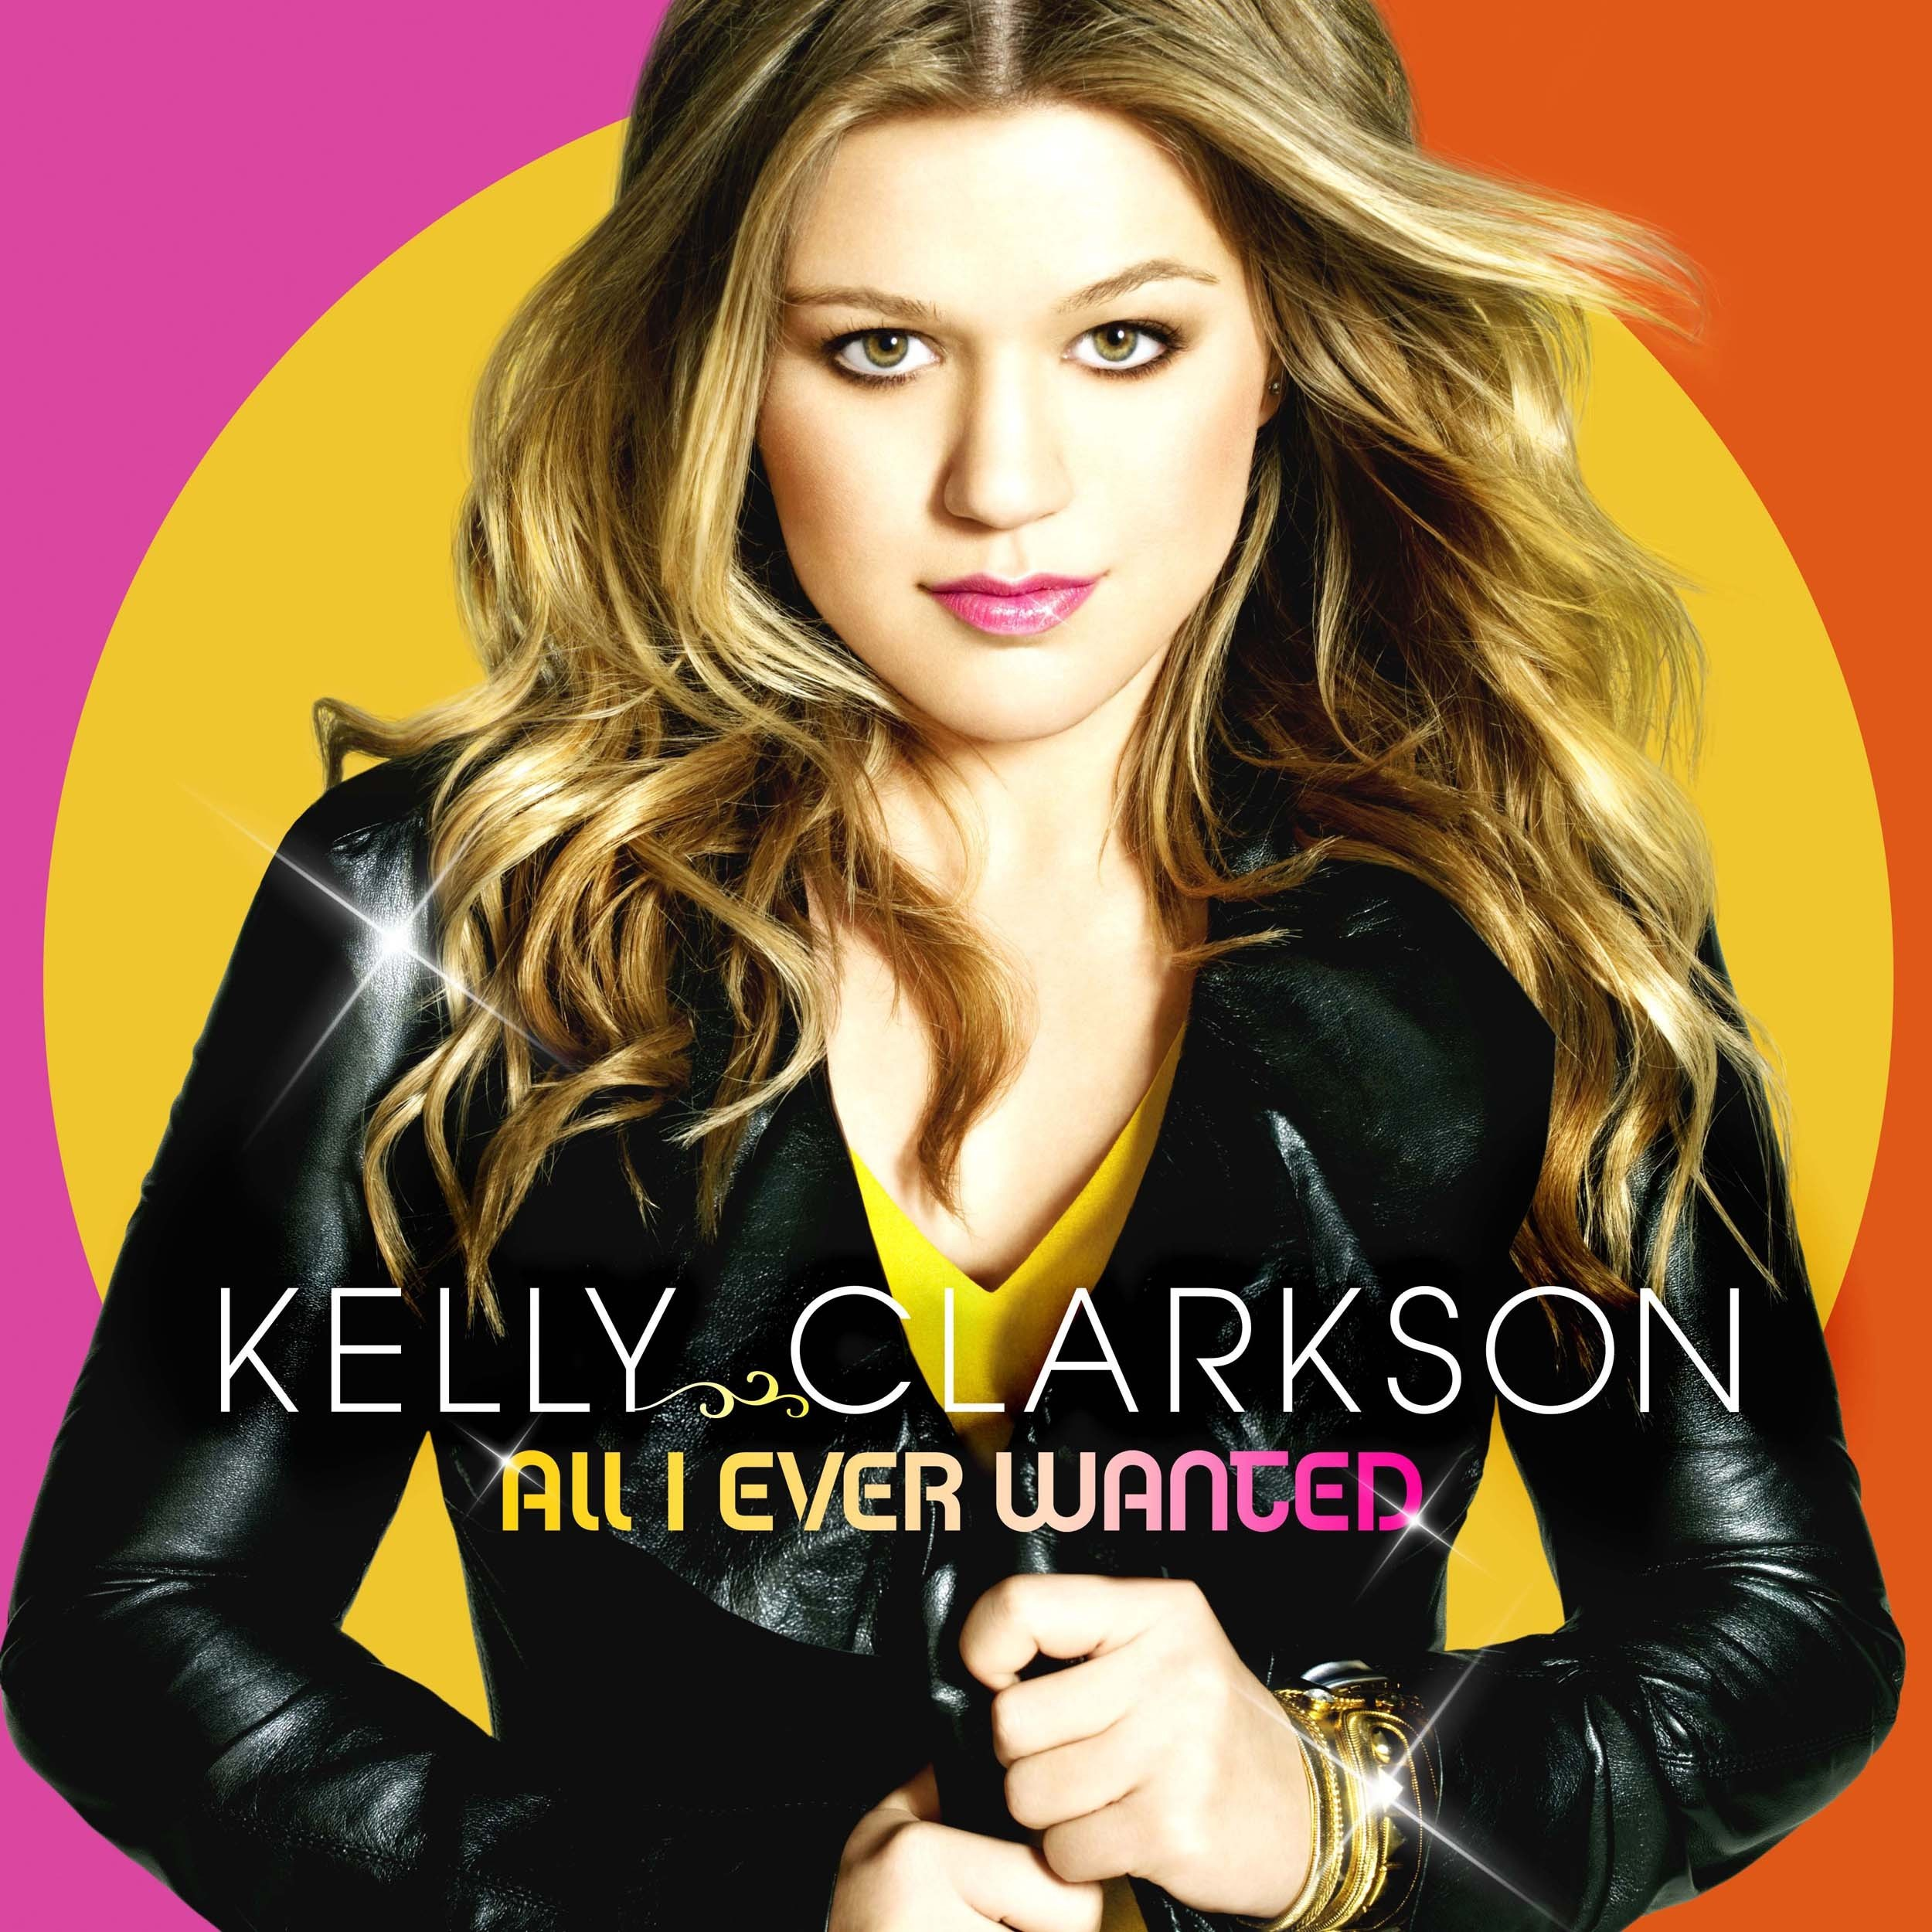 All I Ever Wanted - Kelly Clarkson Photo (16827912) - Fanpop